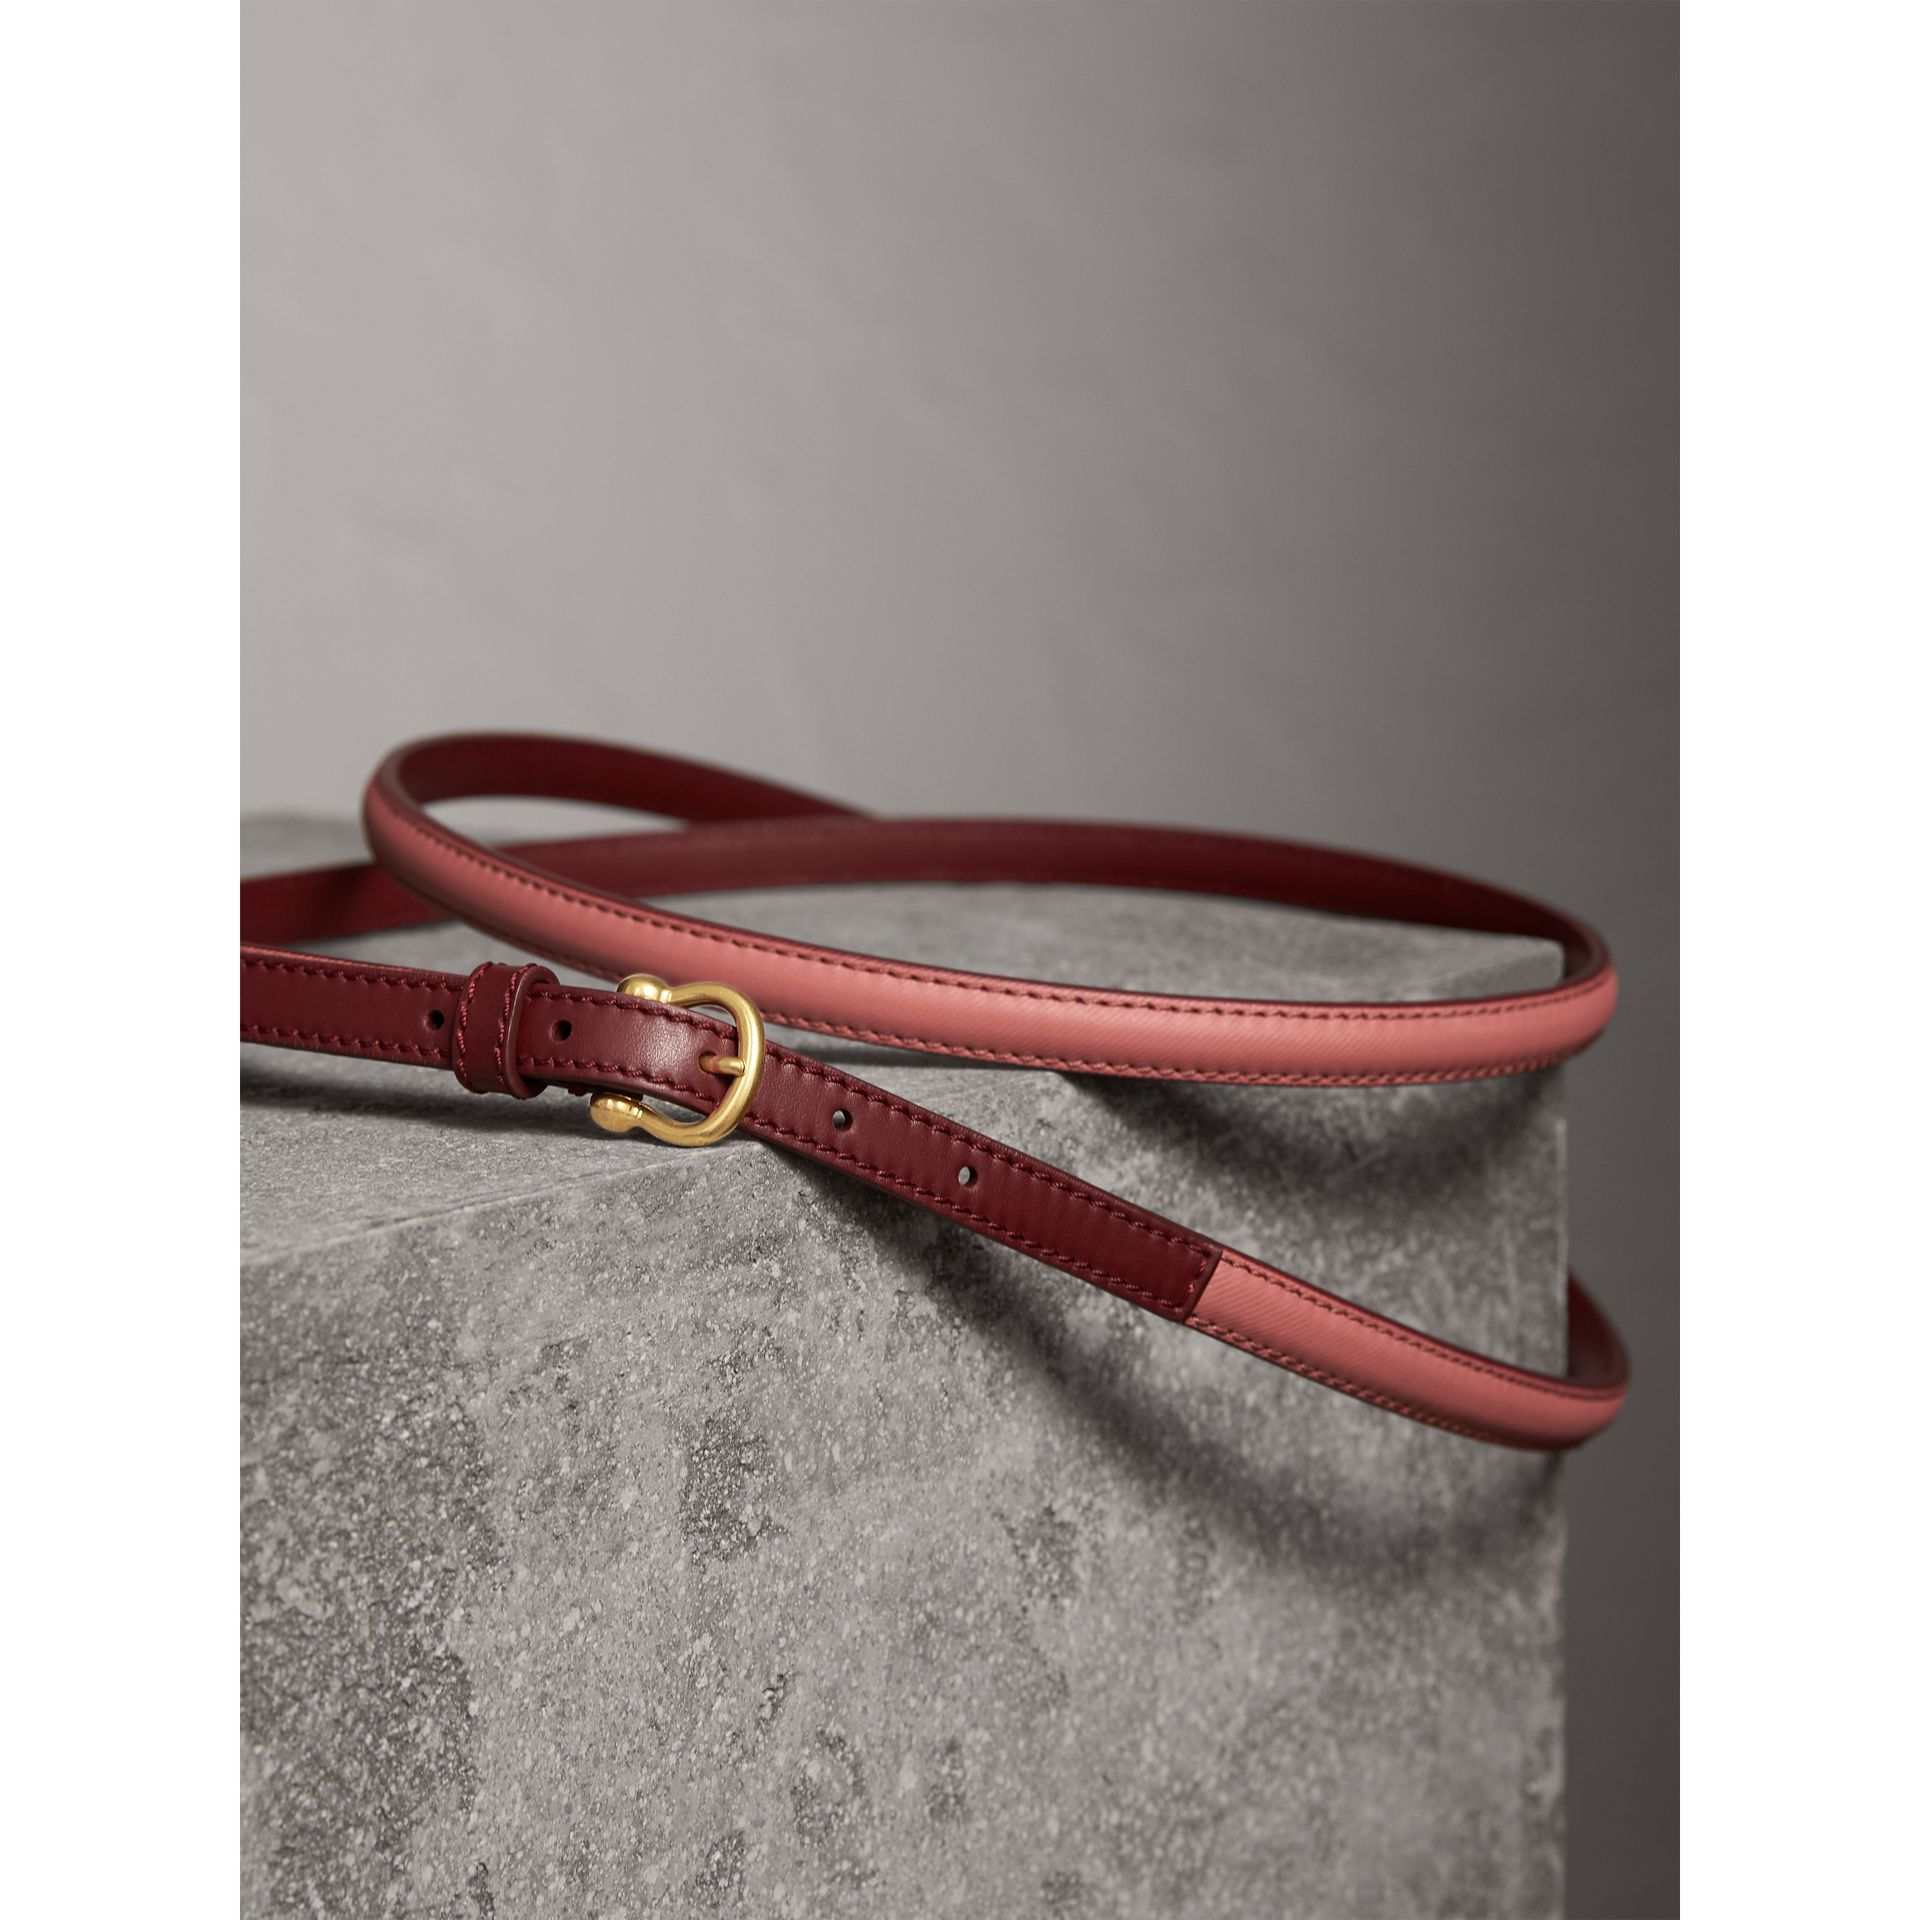 Two-tone Trench Leather Belt in Blossom Pink/ Antique Red - Women | Burberry Australia - gallery image 3